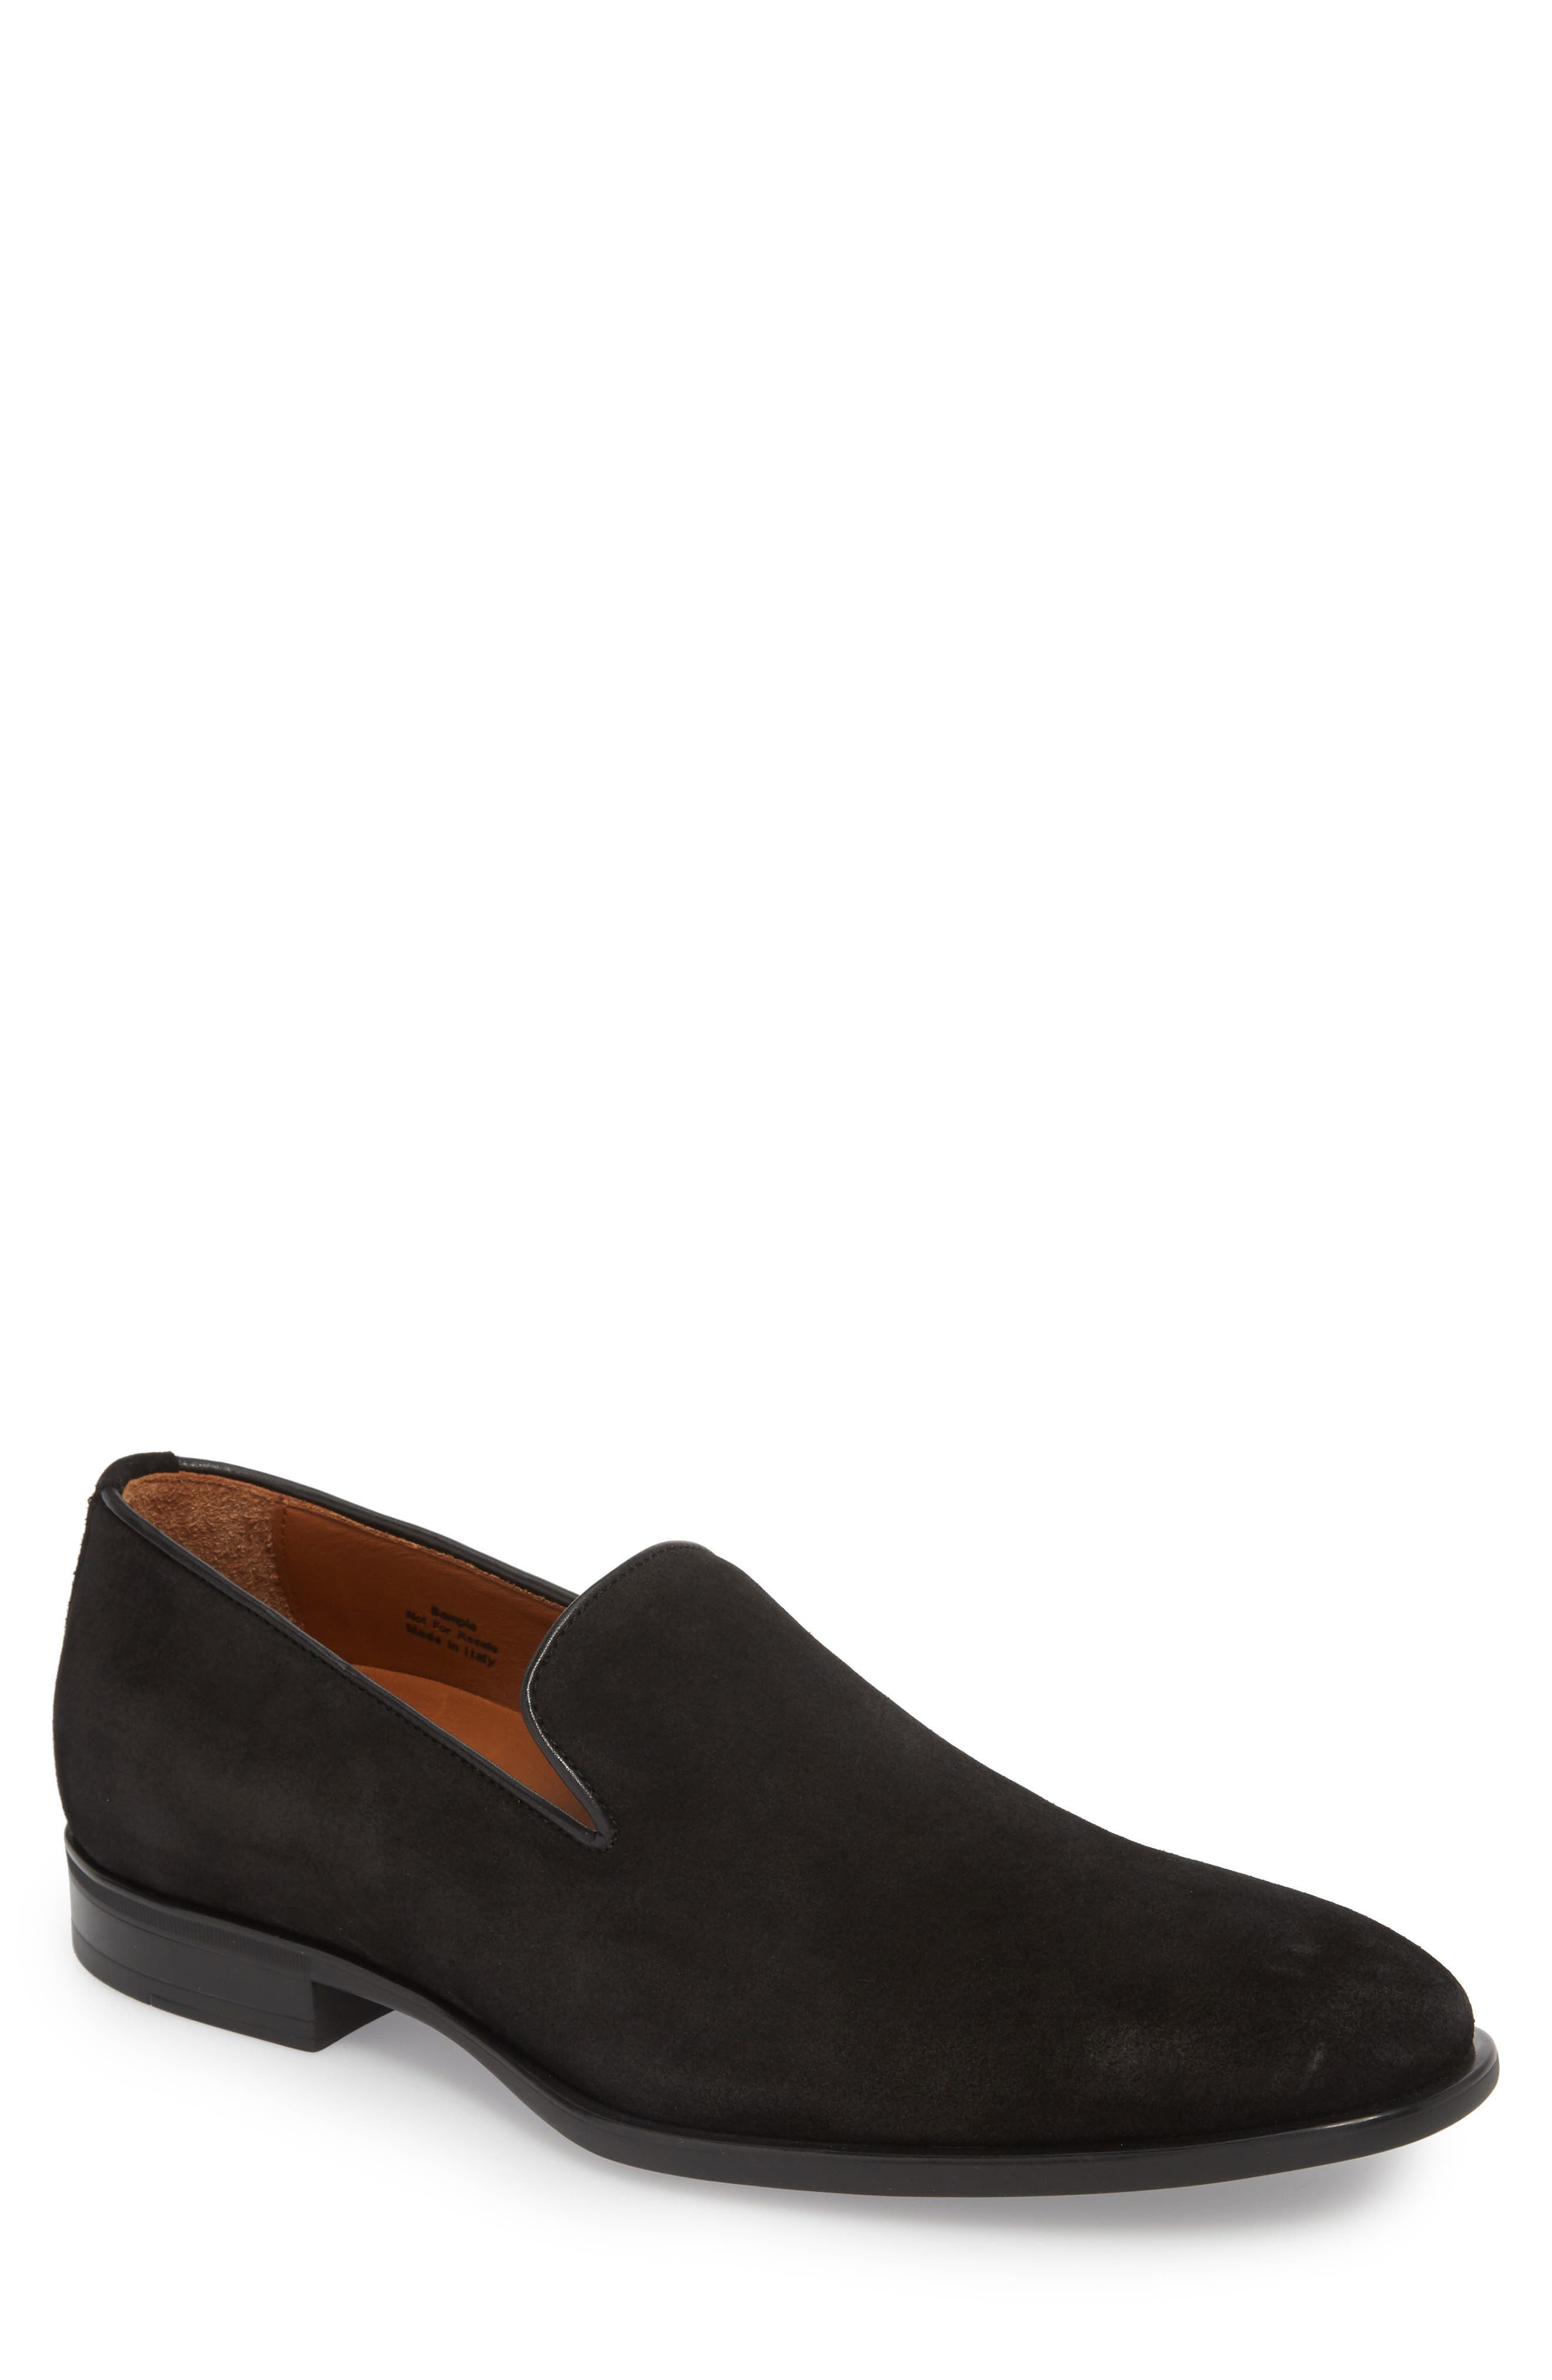 Aiden Venetian Loafer,                         Main,                         color, BLACK